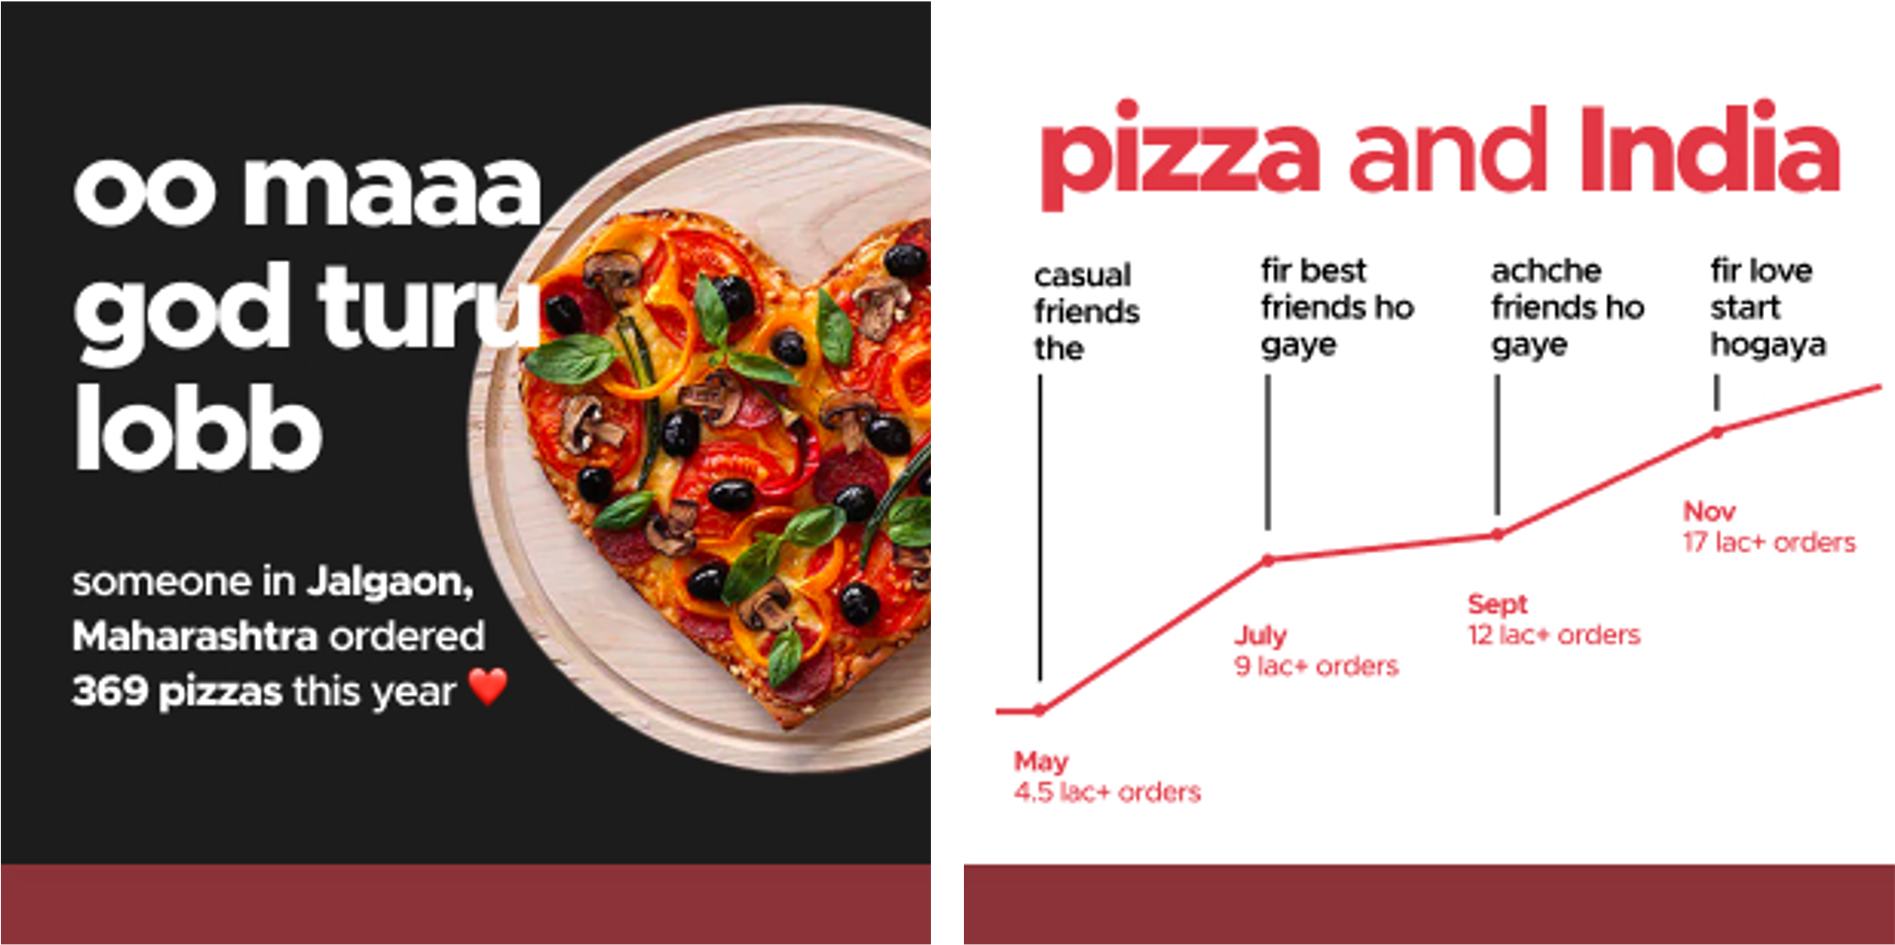 How many pizzas did you order this year?